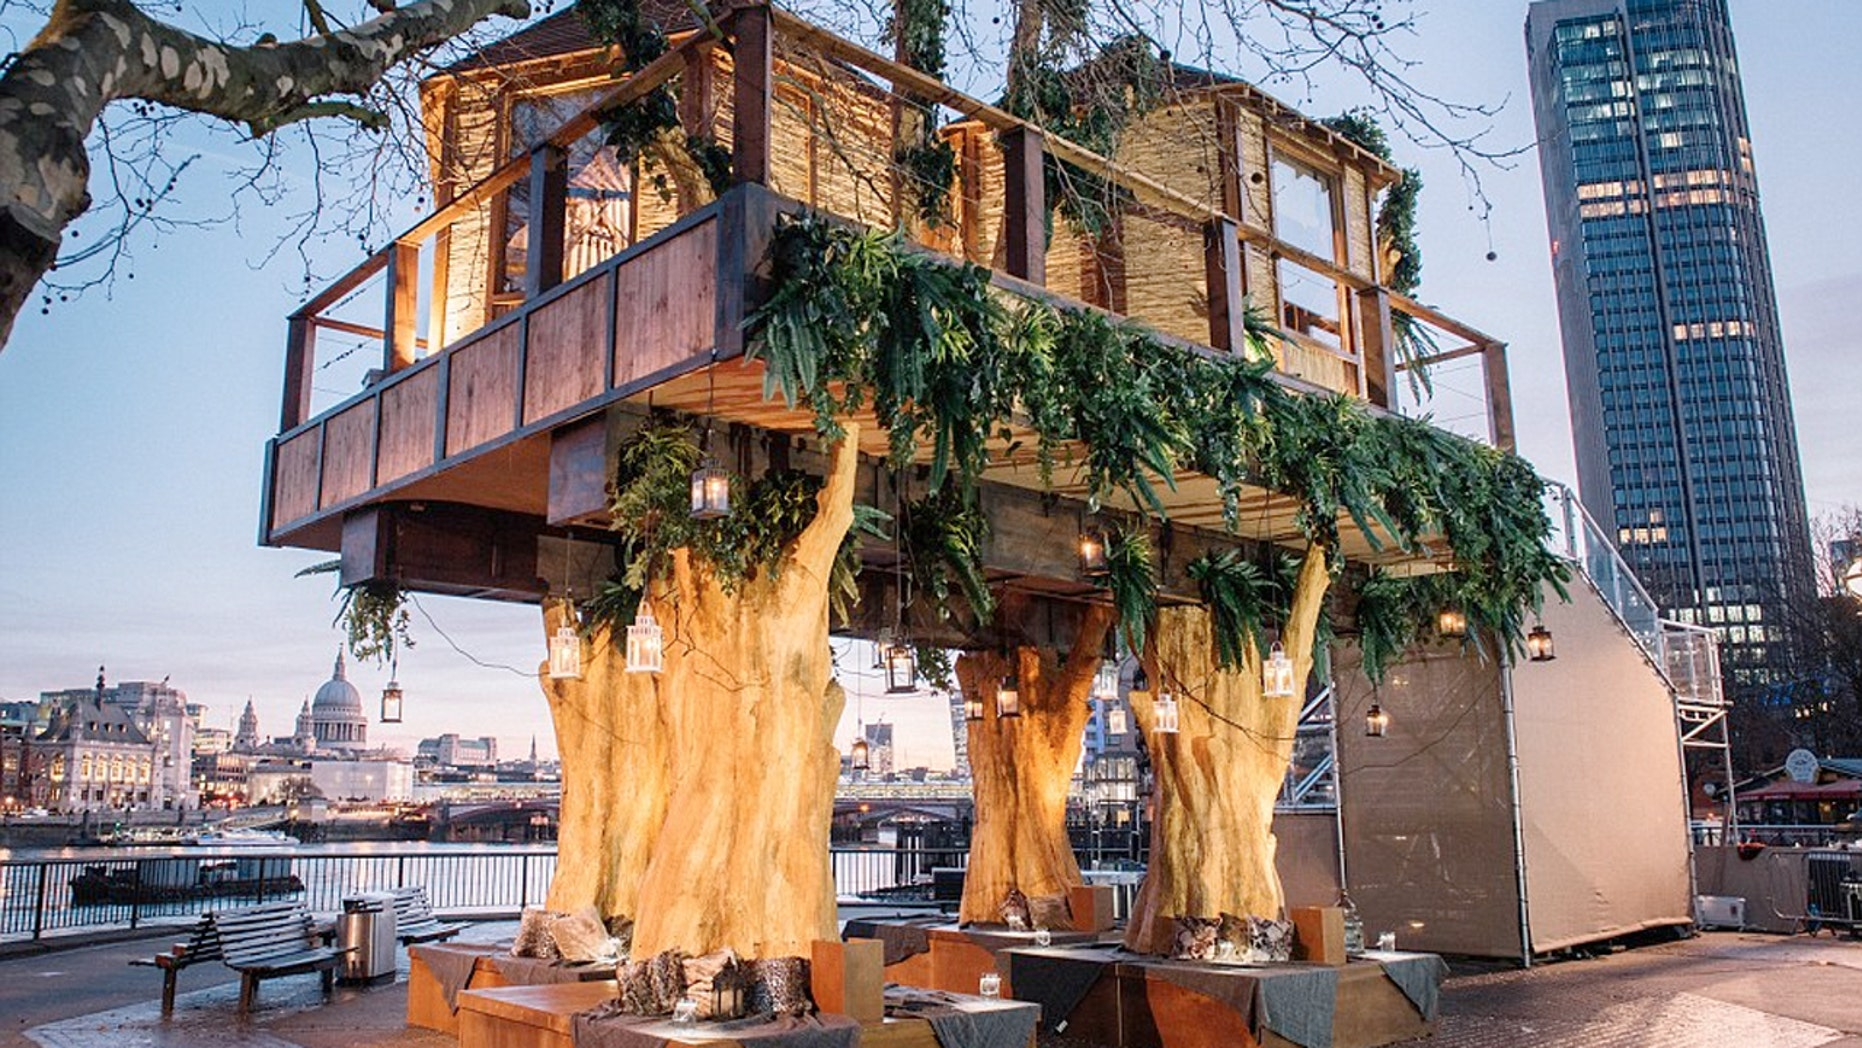 The 35 foot high luxury treehouse was inspired by the Lion Sands Game Reserve treehouse accommodation in South Africa.